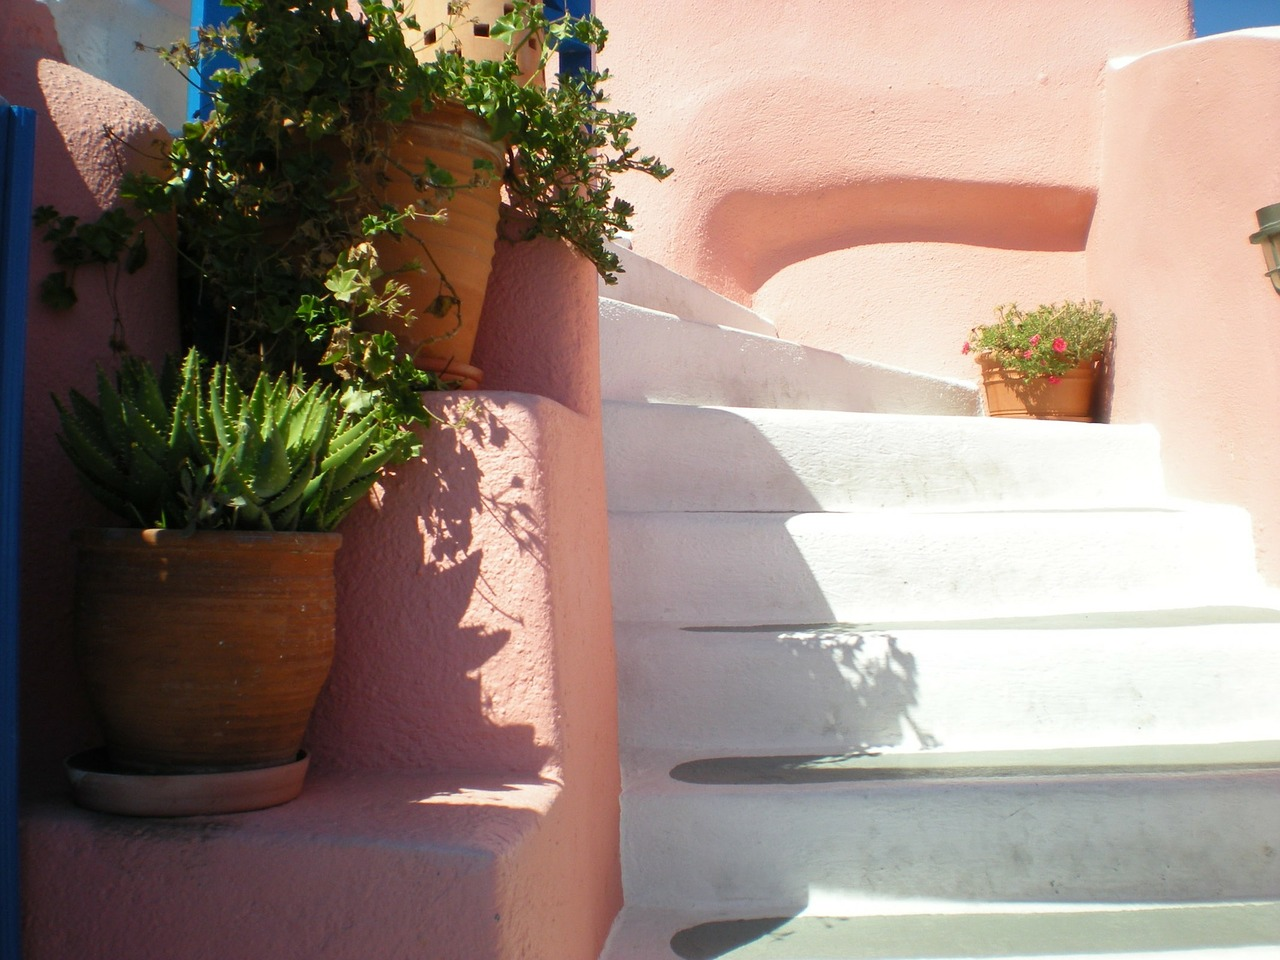 santorini stair flowers free photo